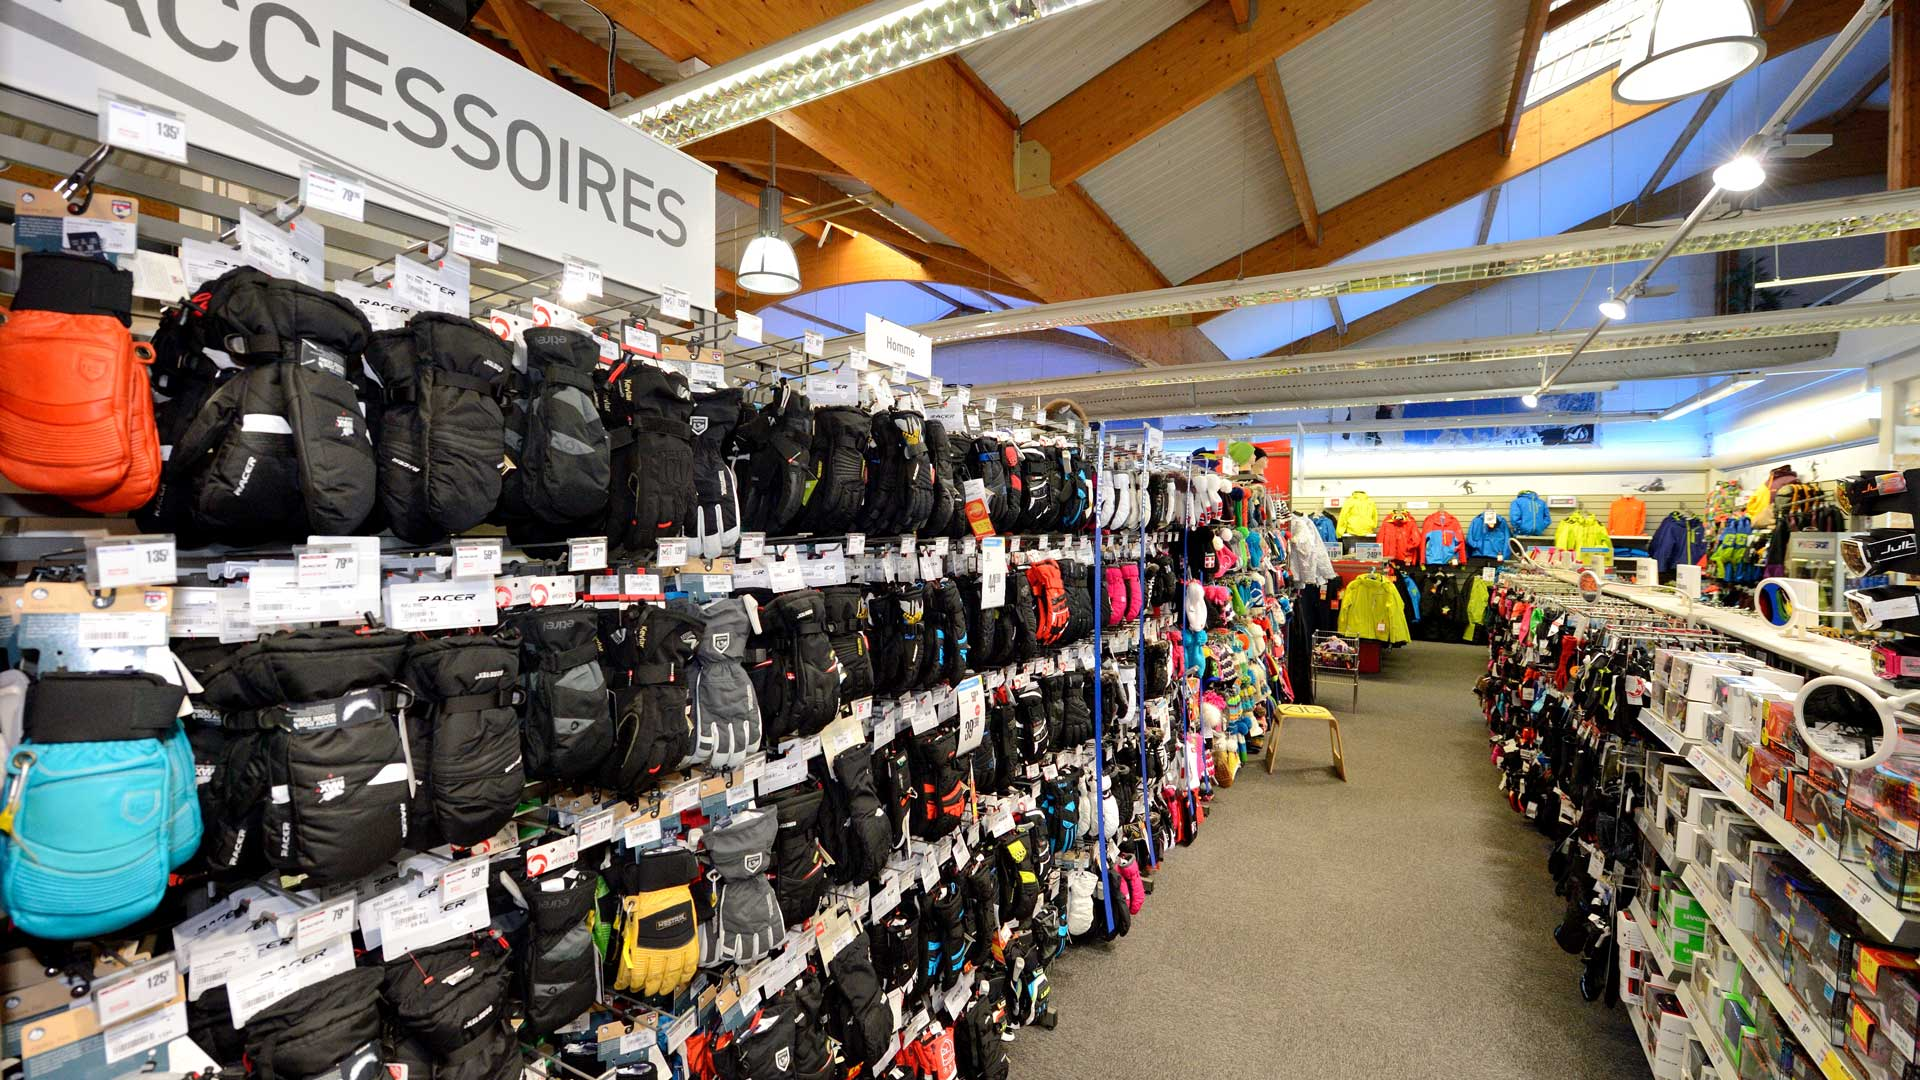 Intersport Bourg-Saint-Maurice, rayon Accessoires</